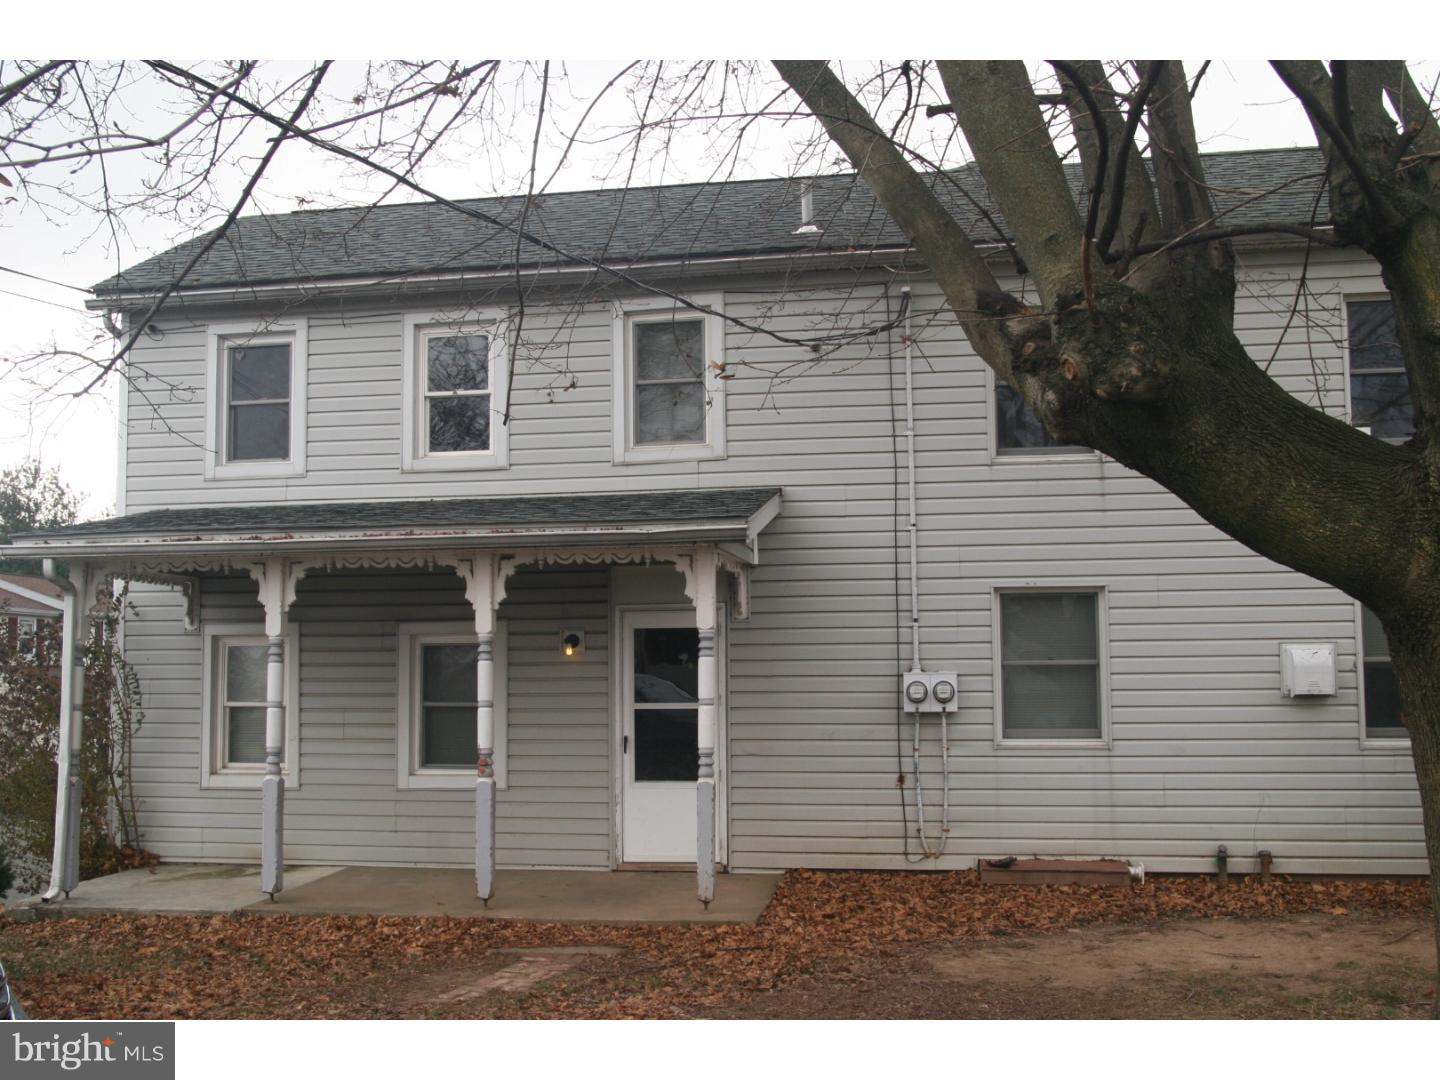 555 WALNUT STREET, BALLY, PA 19503